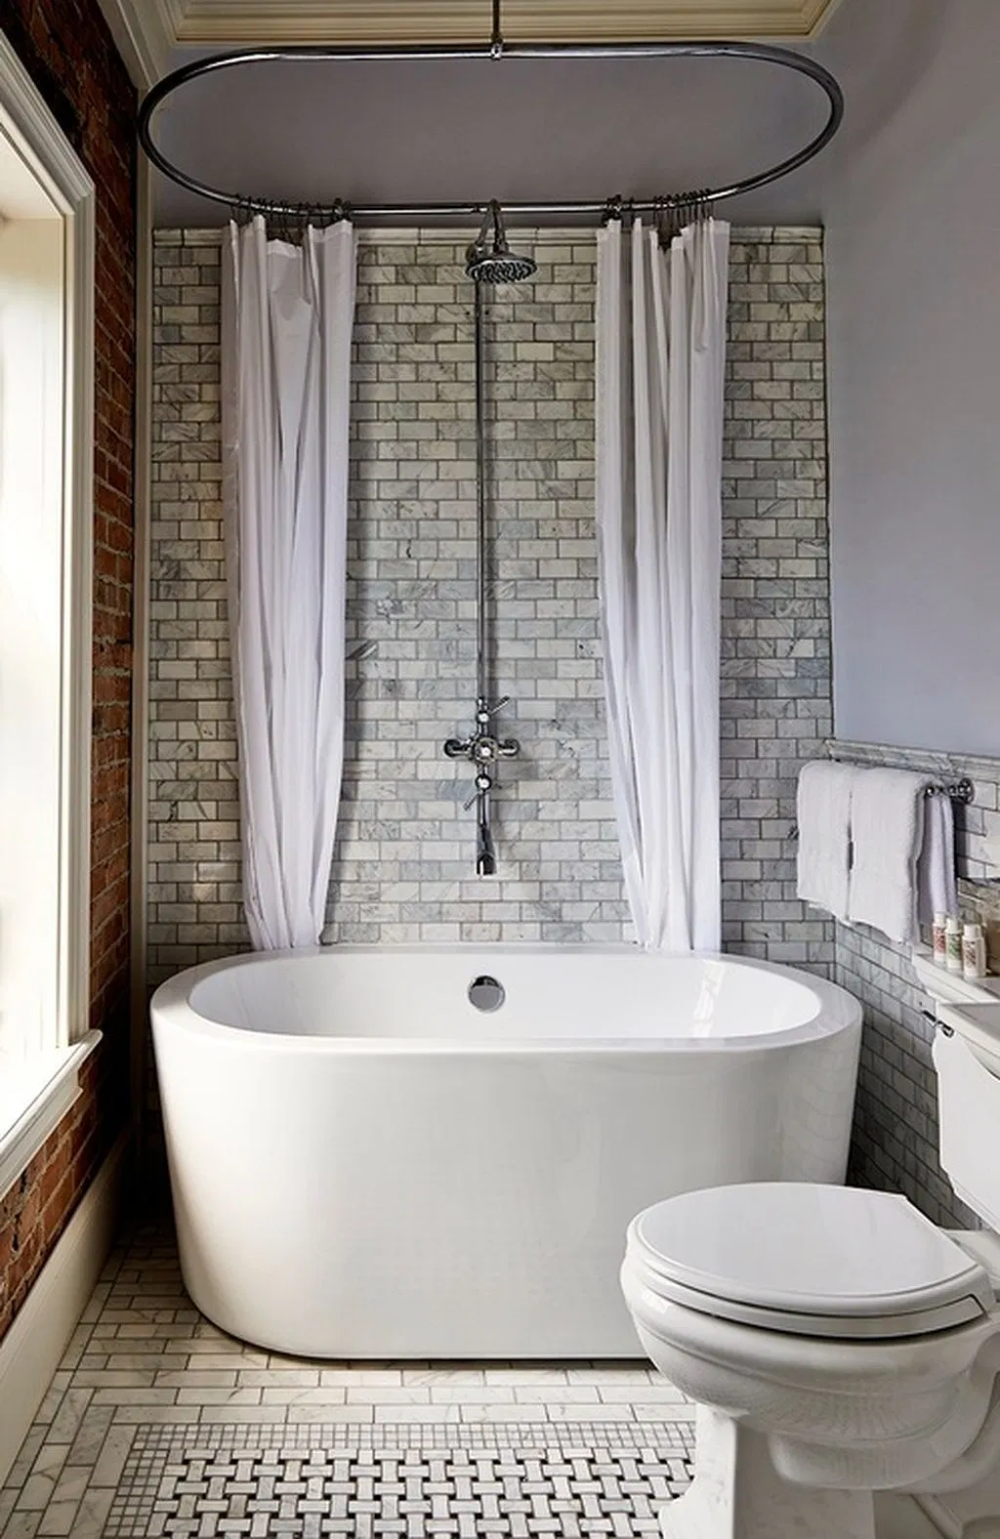 Minimalist White Bathroom With Elegant White Freestanding Bathtubs From Canada Stunning Seashore Resi With Images Shower Over Bath Small Bathtub Small Bathroom With Shower